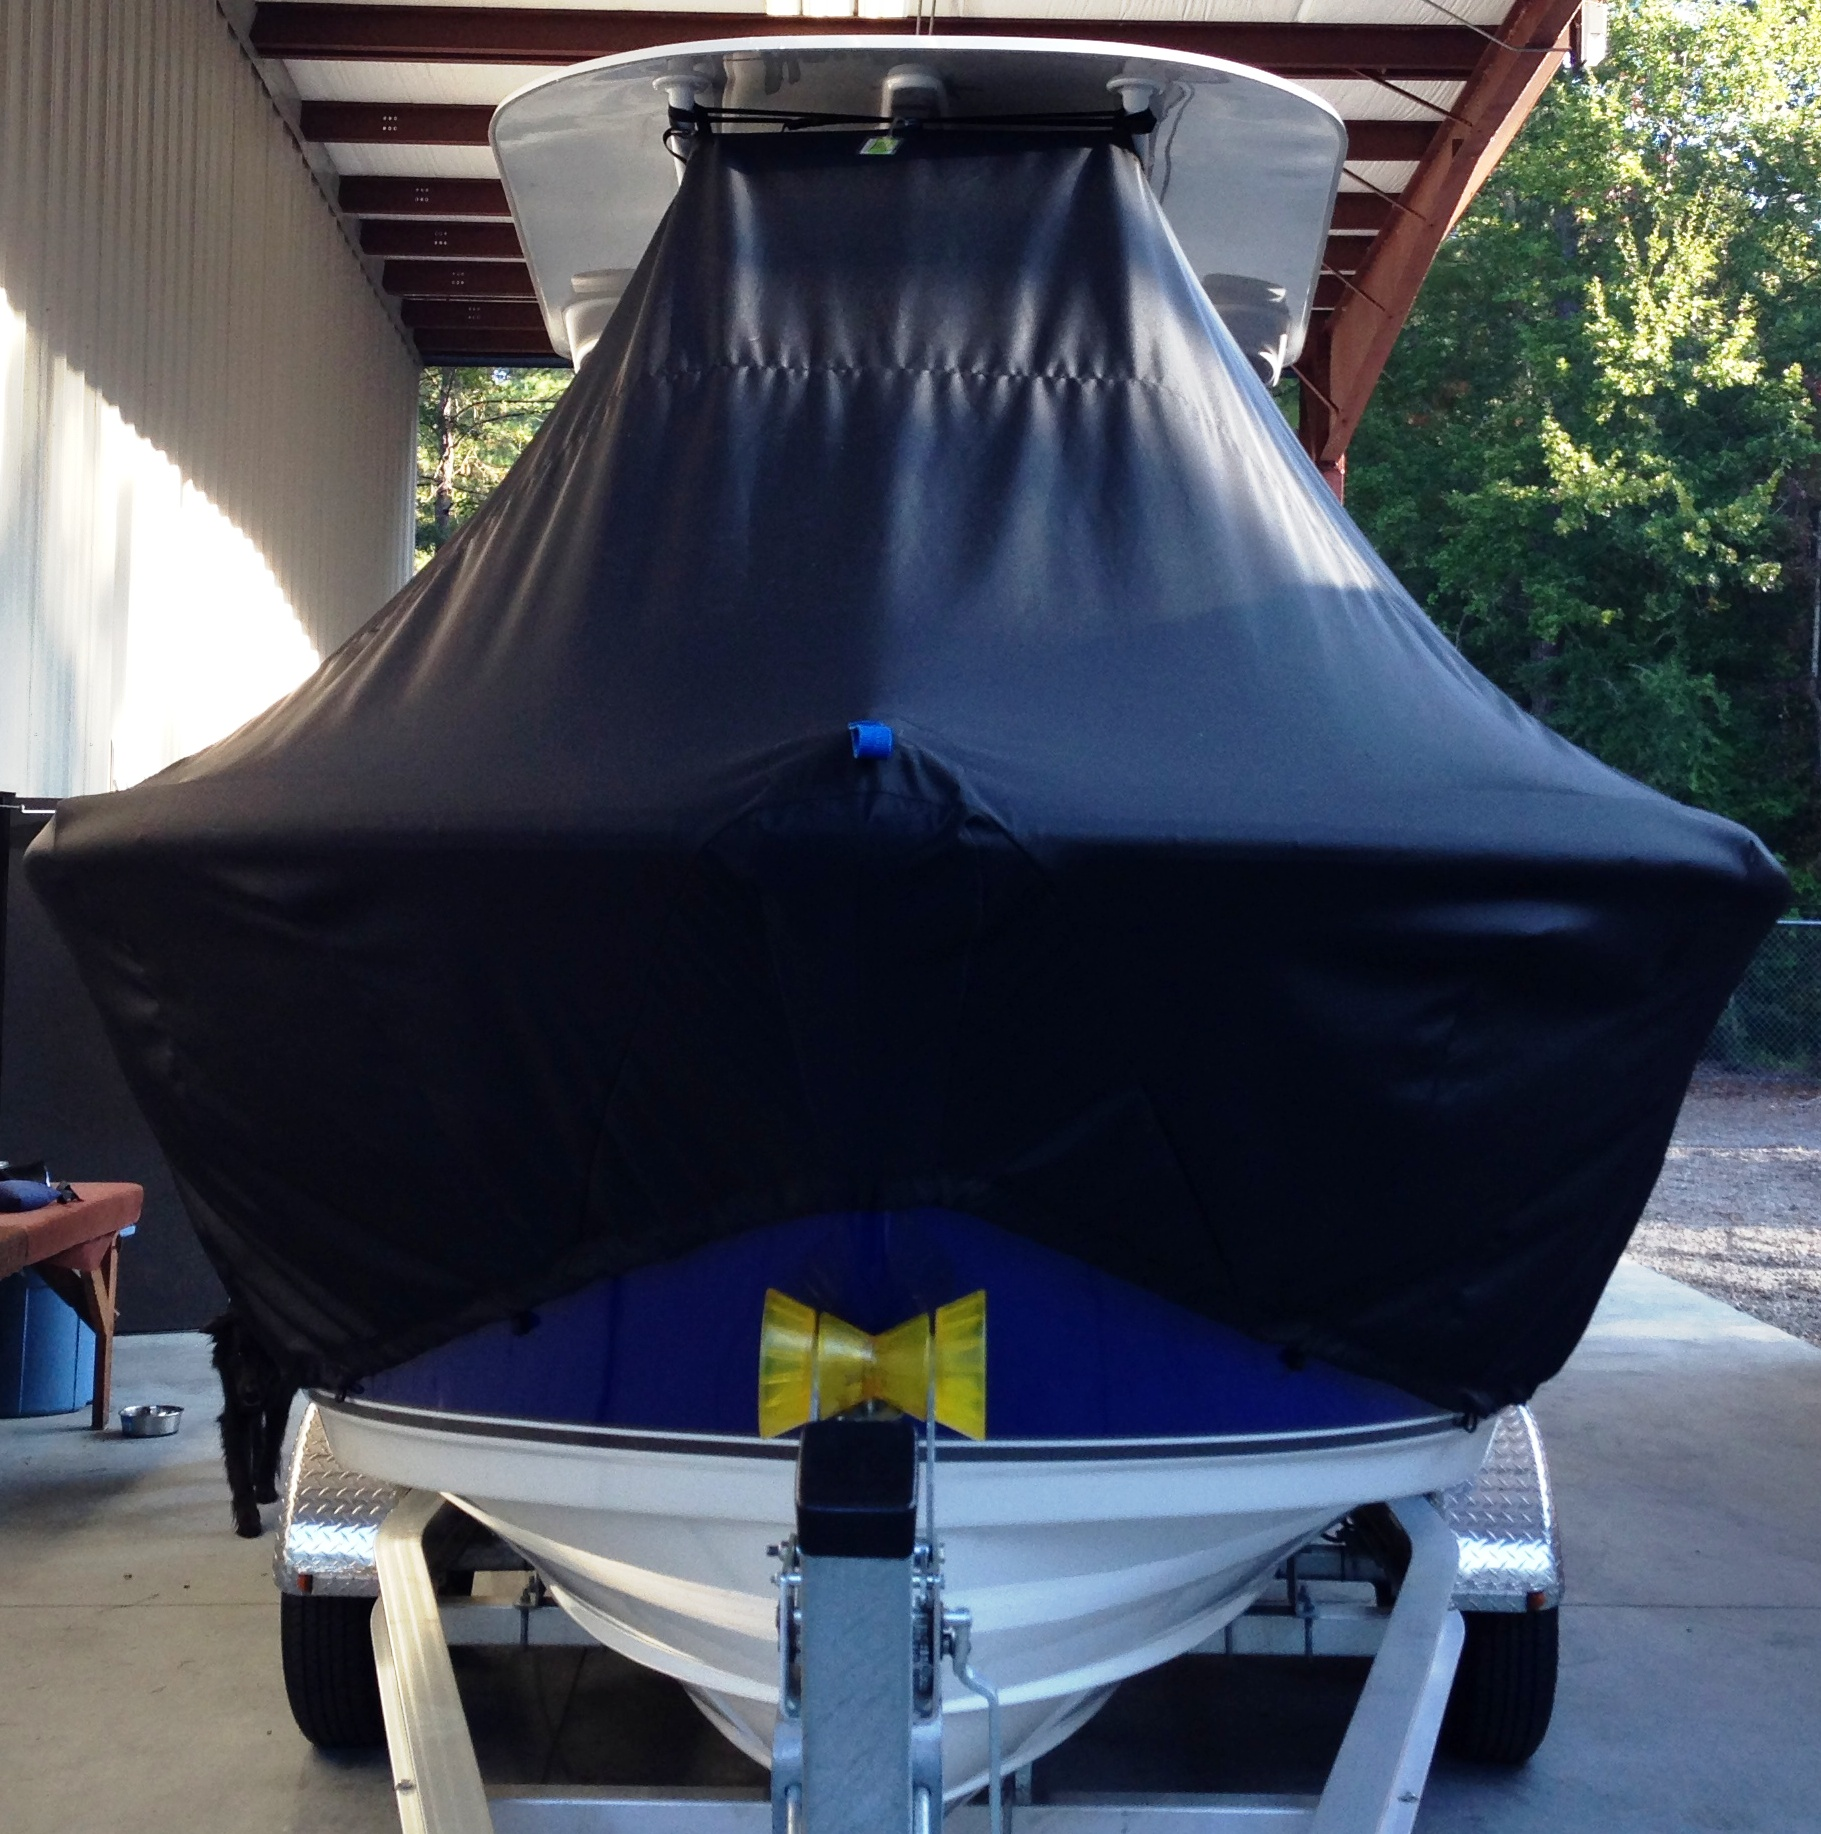 NauticStar 22XS Offshore, 20xx, TTopCovers™ T-Top boat cover front